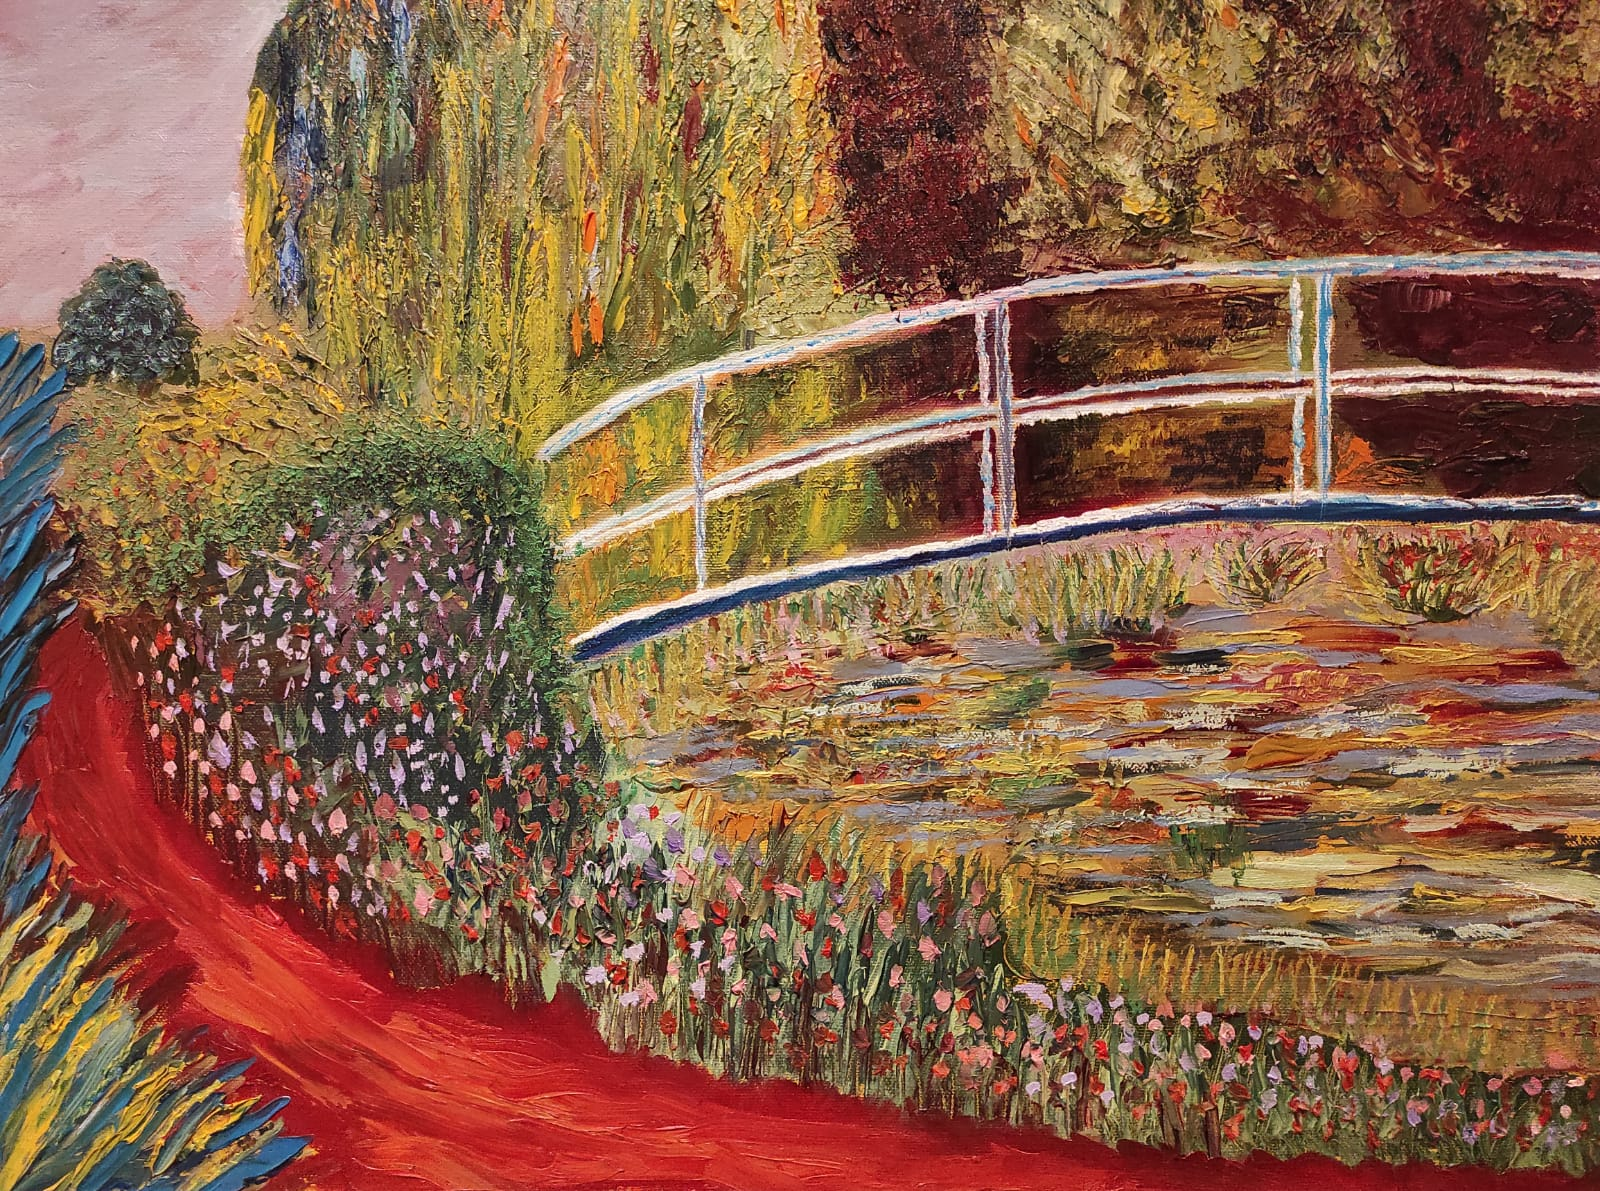 Post Monet Oil Painting for sale by Irish artist